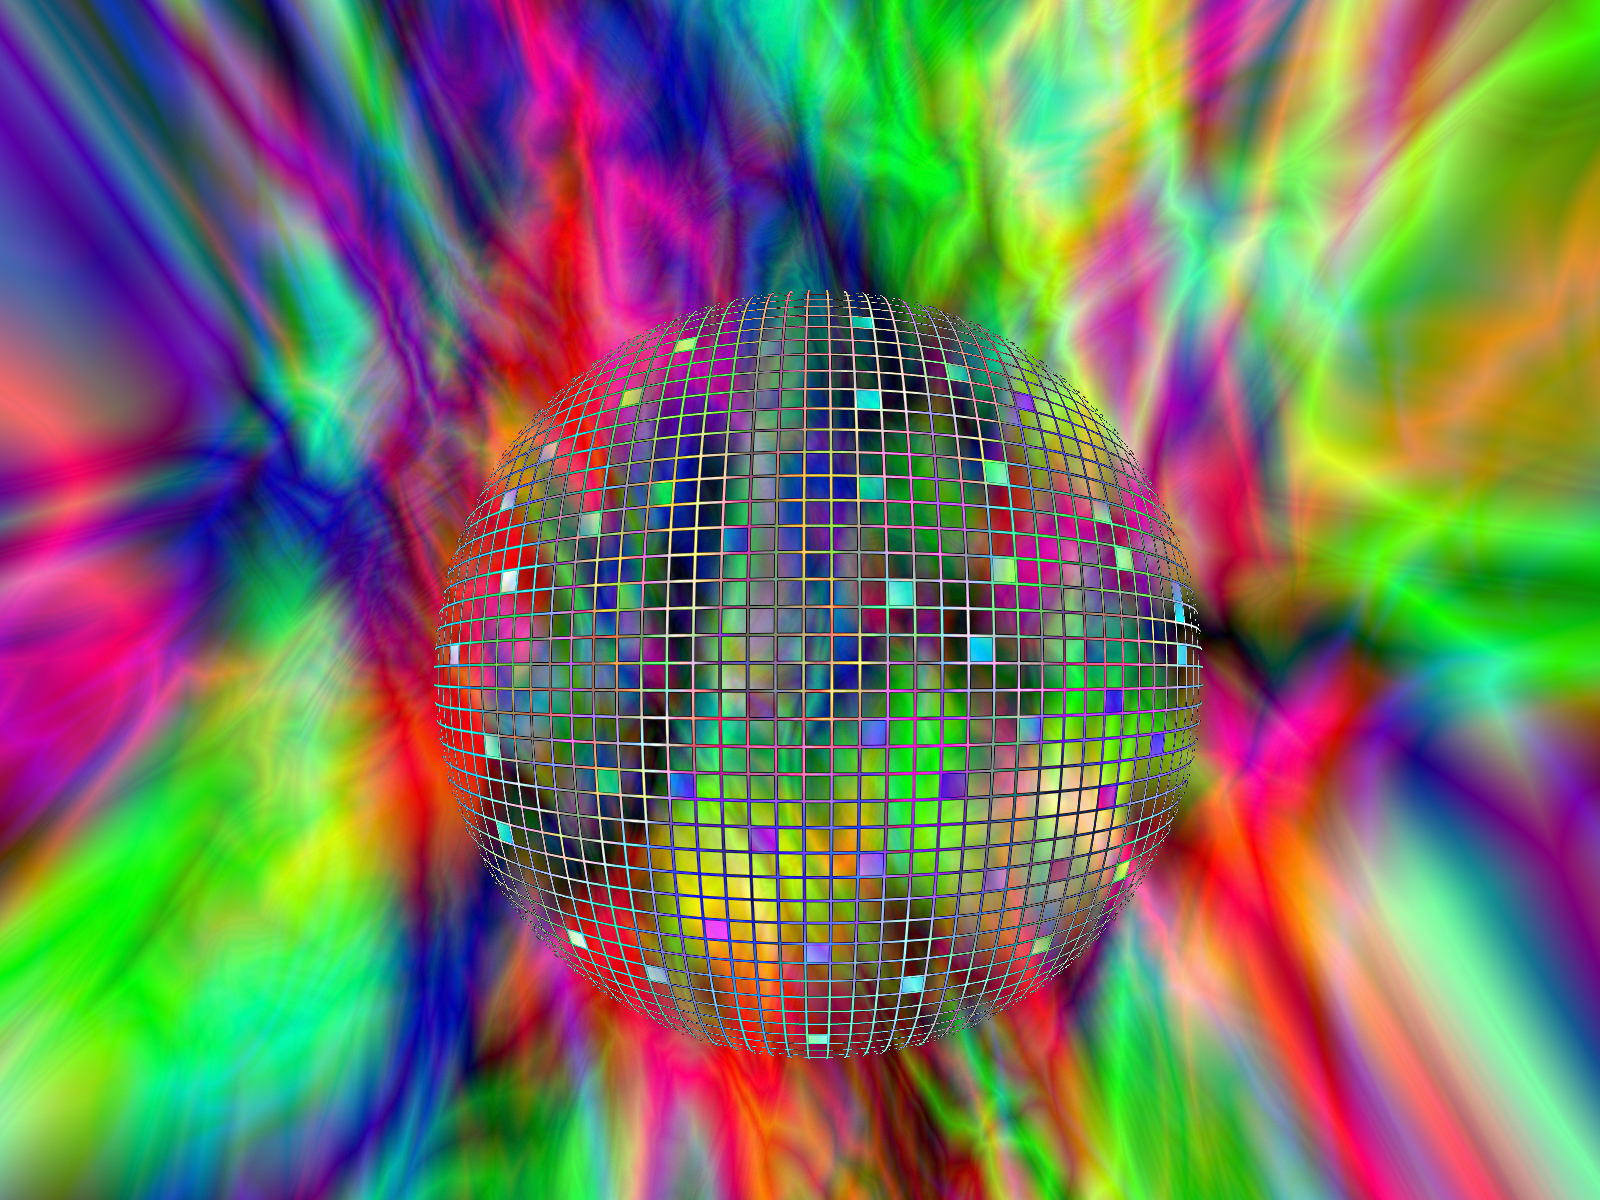 Disco Fever HD Wallpaper 1600x1200